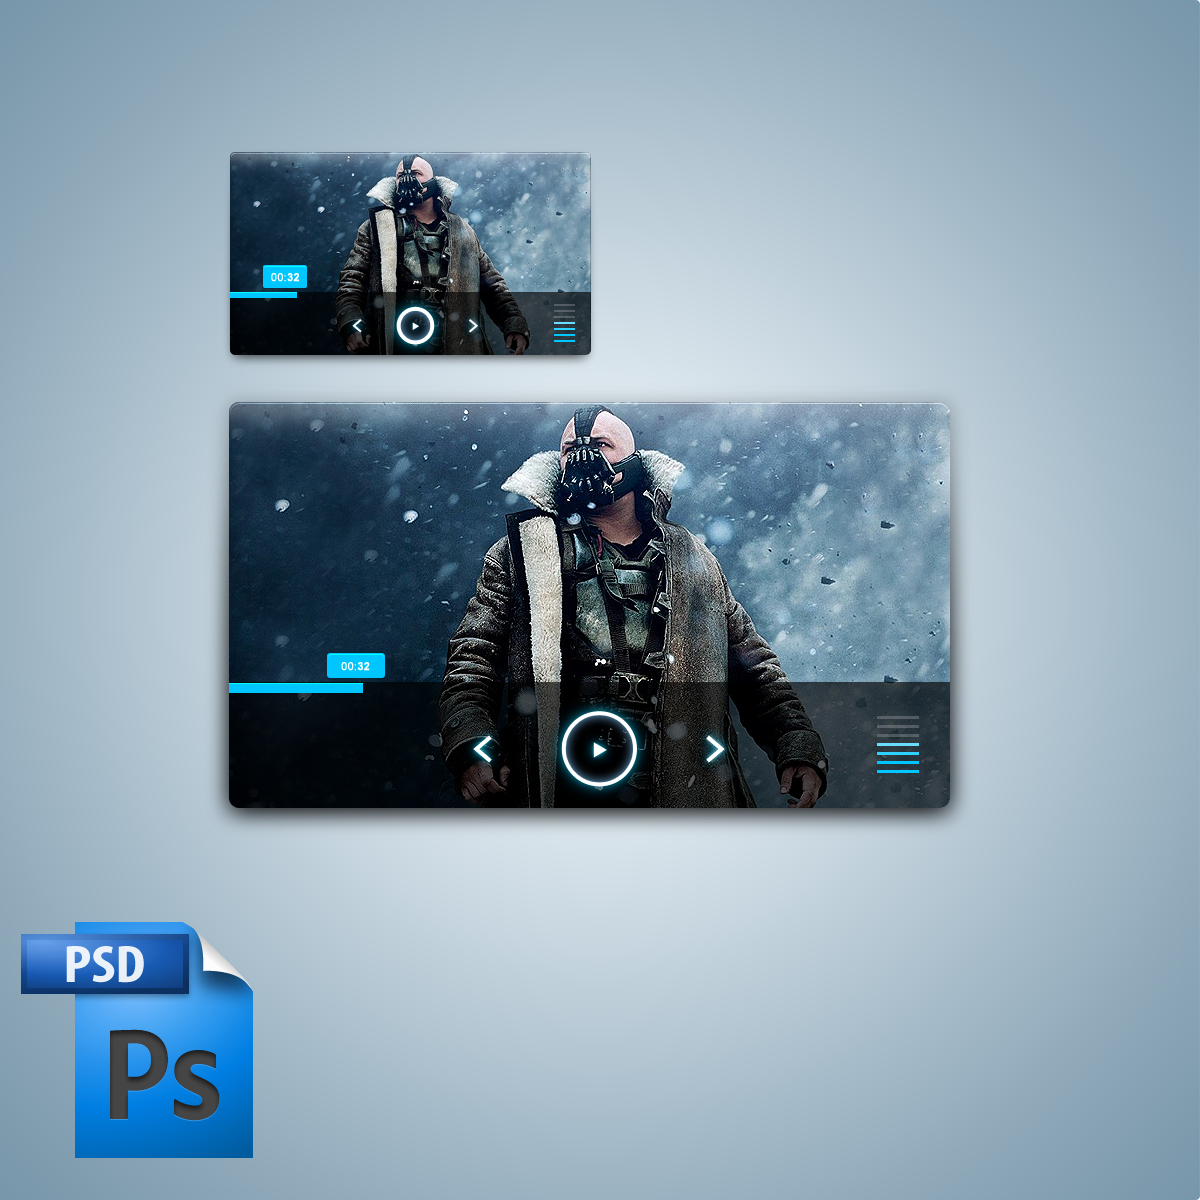 Media player large